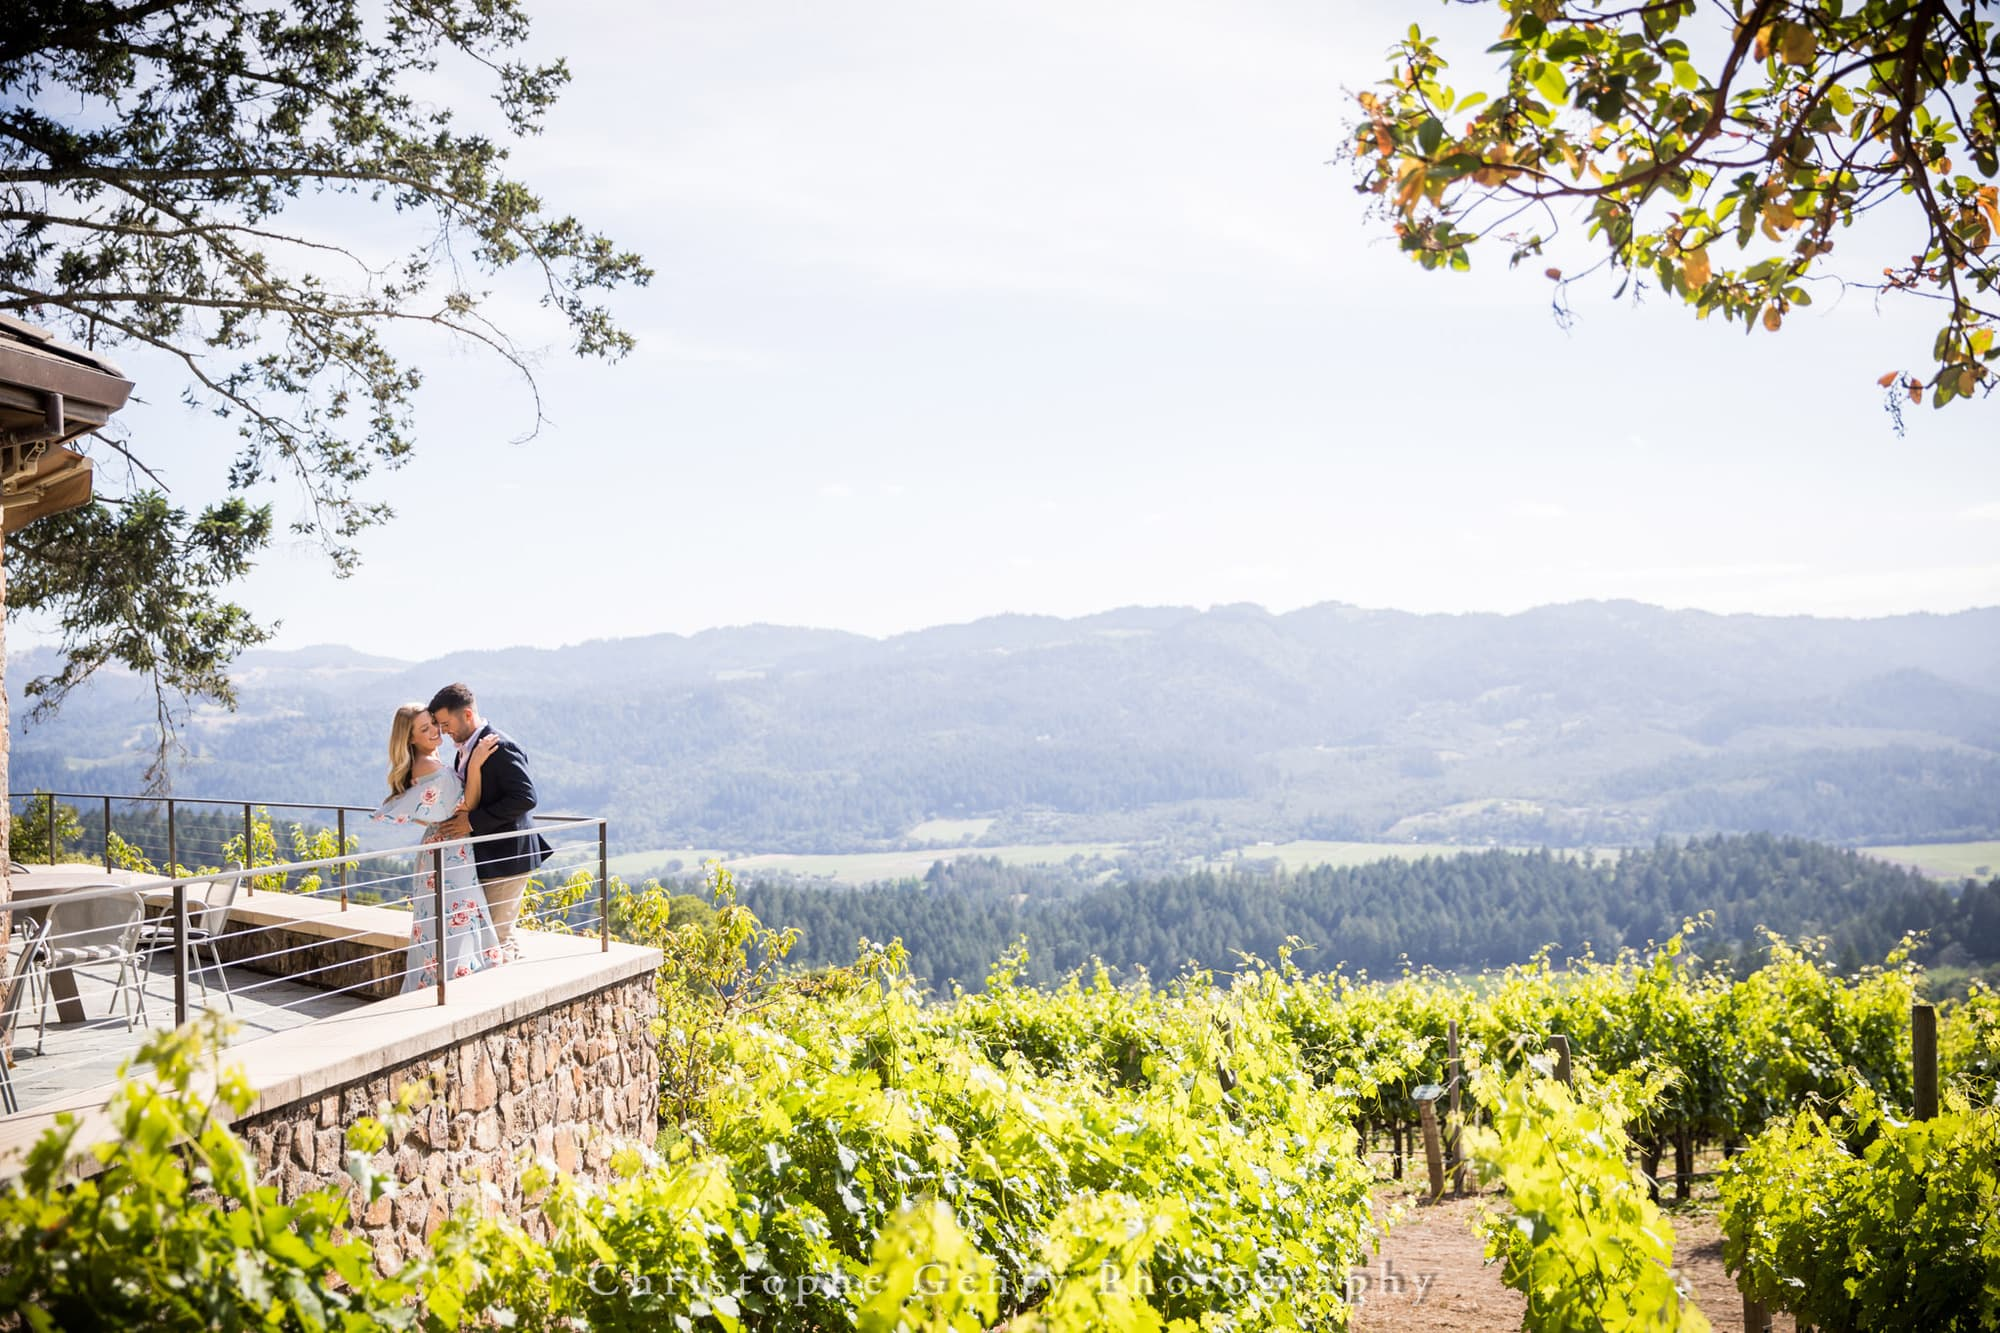 Marriage Proposal Photography in Napa -1042